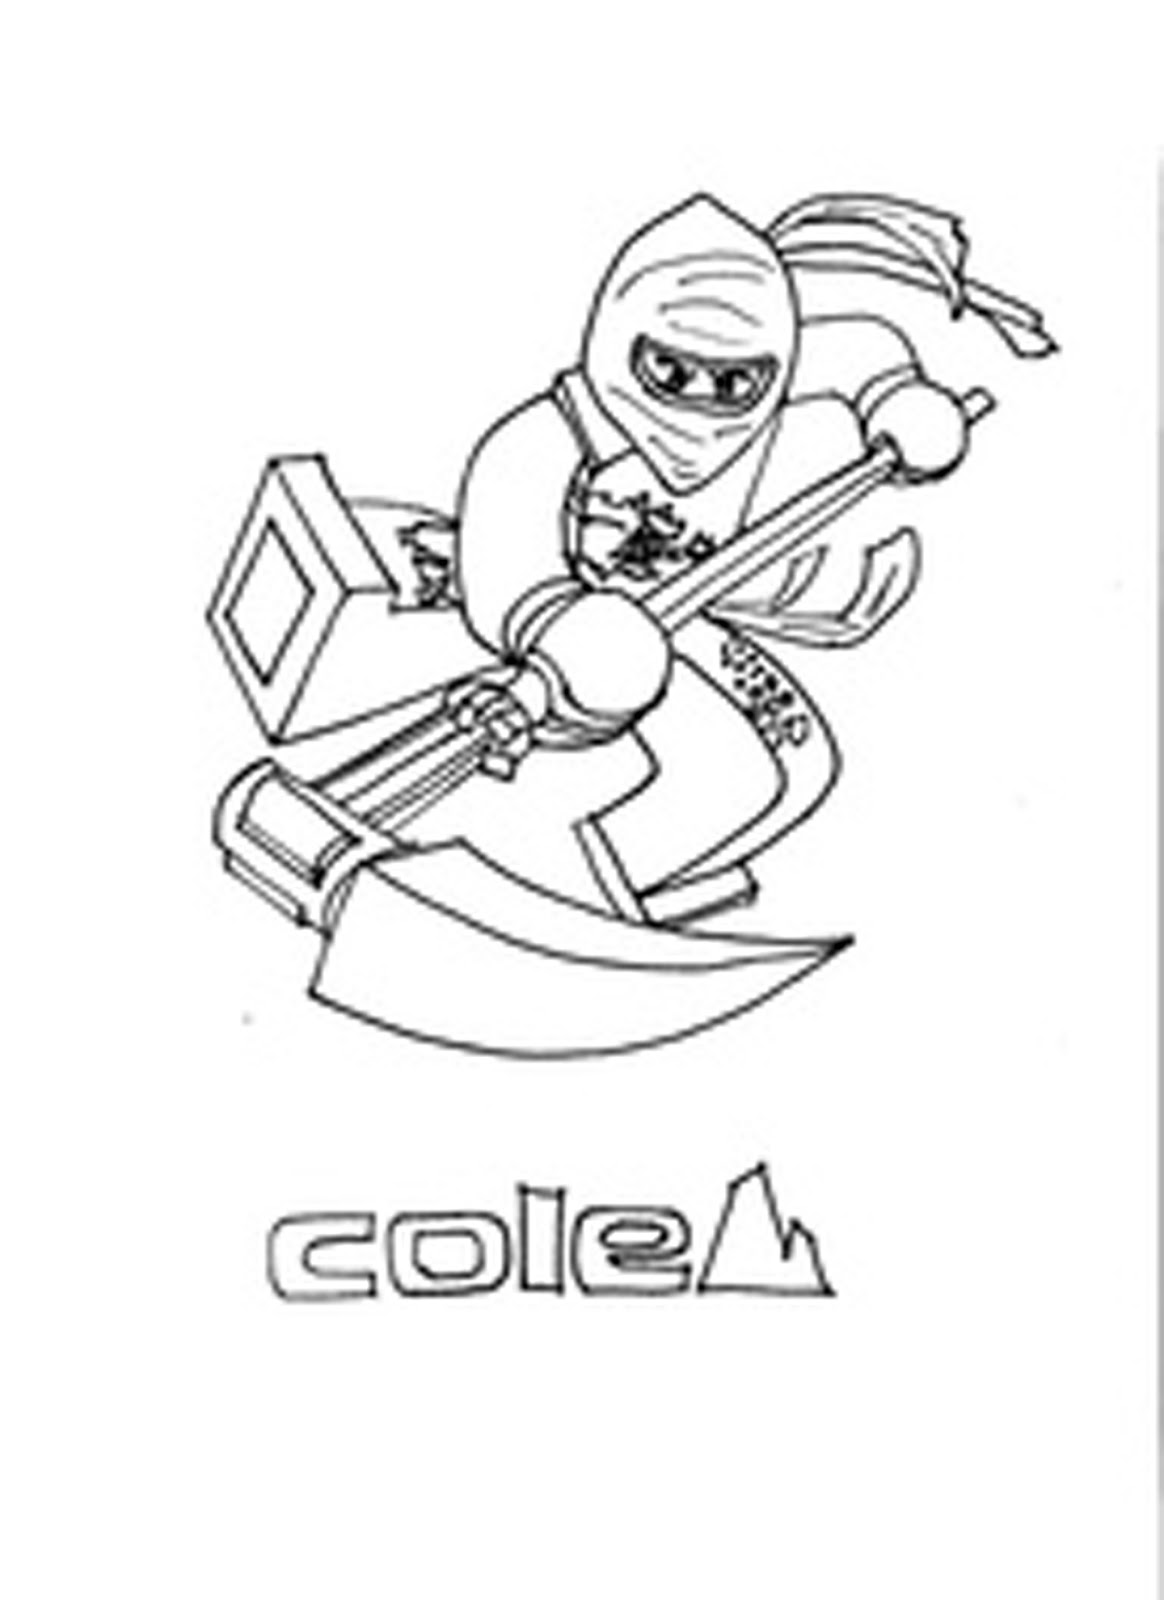 Free Coloring Pages for Kids 2